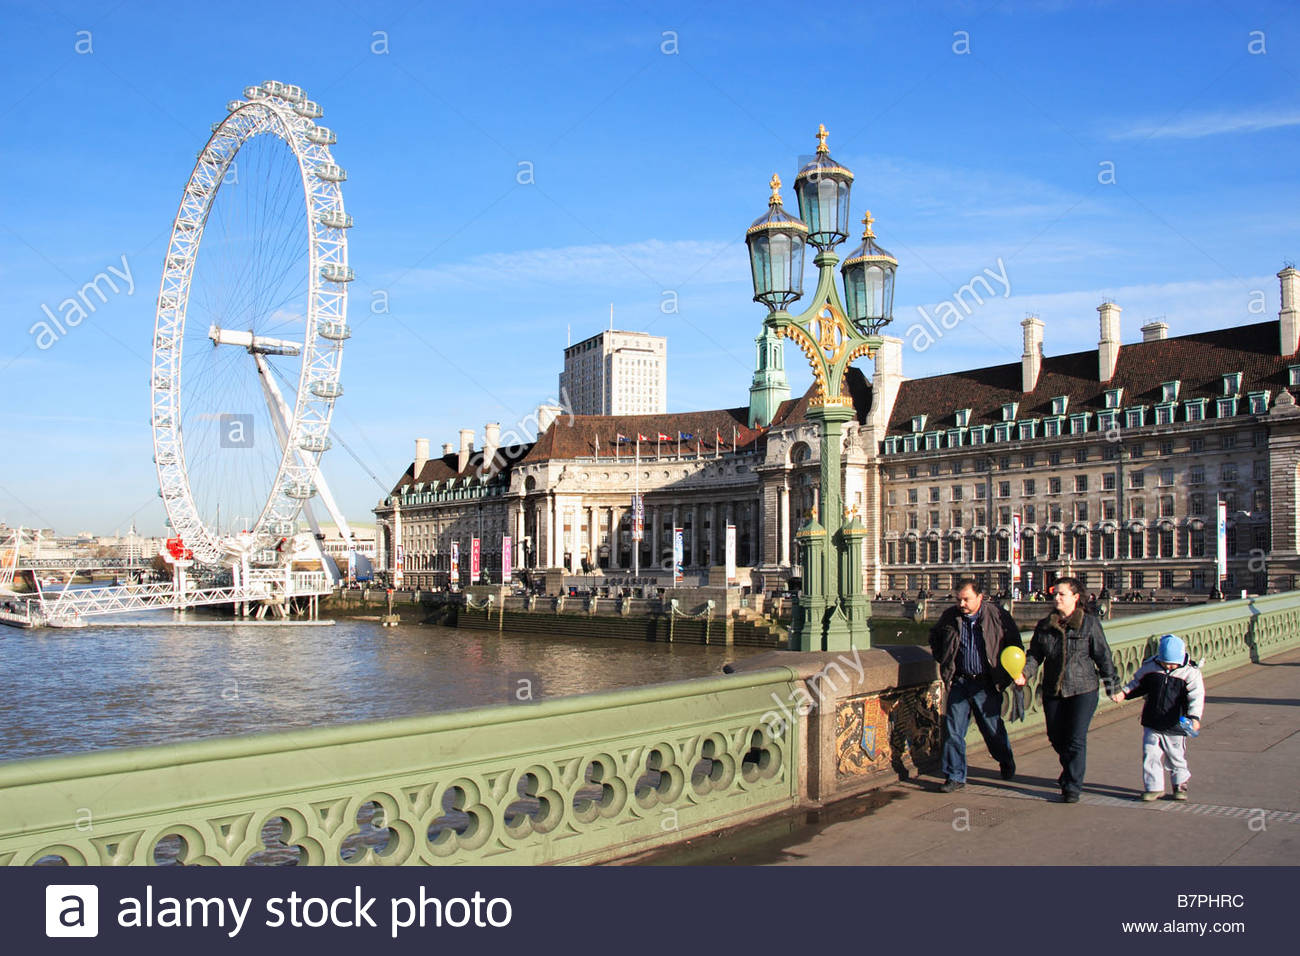 Il London Eye al di là del fiume Tamigi Foto Stock